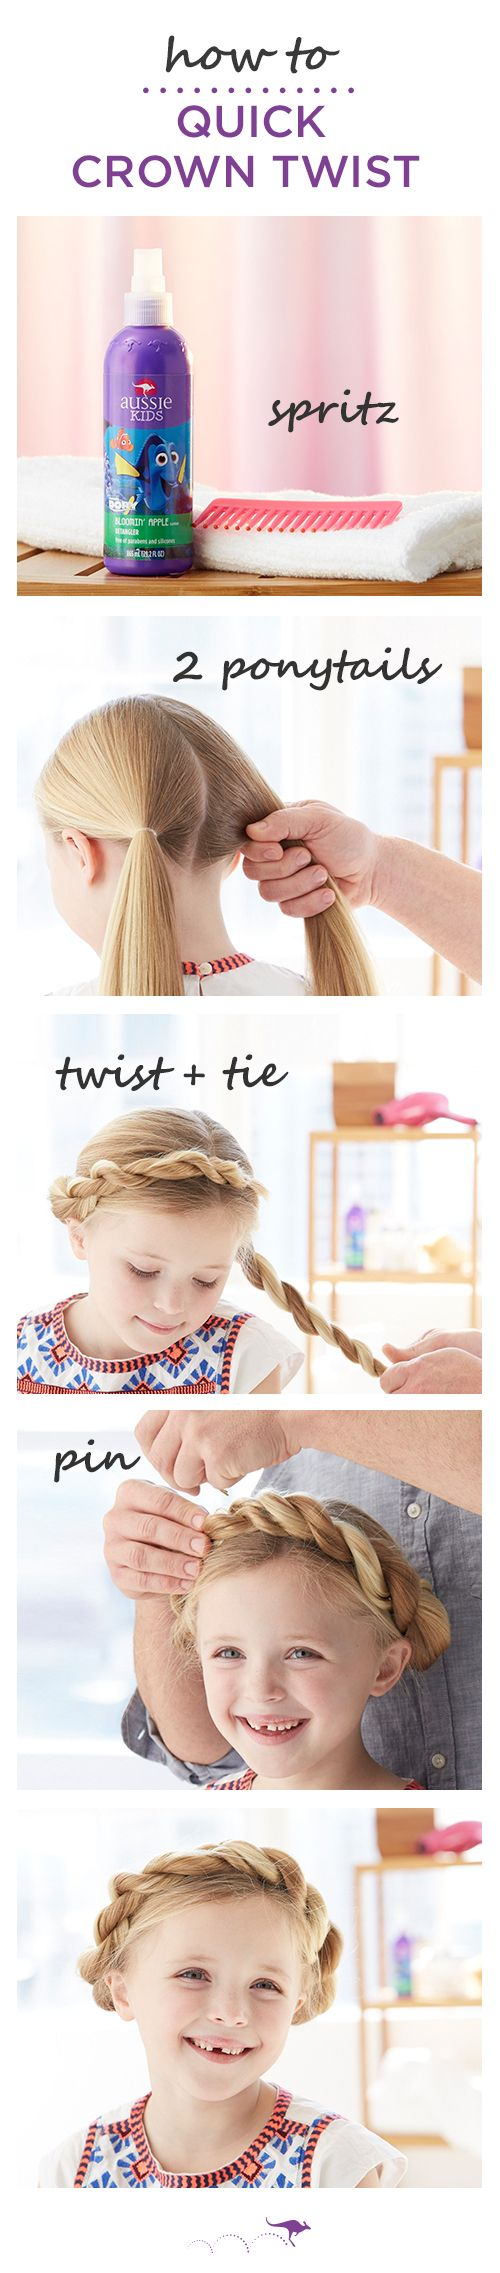 How To: Quick Crown Twist | Give classic pigtails a modern twist and get out the door just as quick | 1. Part hair down the middle and tie into two low ponytails. Pro Tip: For no knots (ouch!), use Aussie Bloomin' Apple Detangler before you brush • 2. Separate the pony into two even strands, then twist and wrap the strands around each other • 3. Use a bobby pin to secure the twisted pony in place near the top of the crown. Repeat on the other pony and you're ready to go.